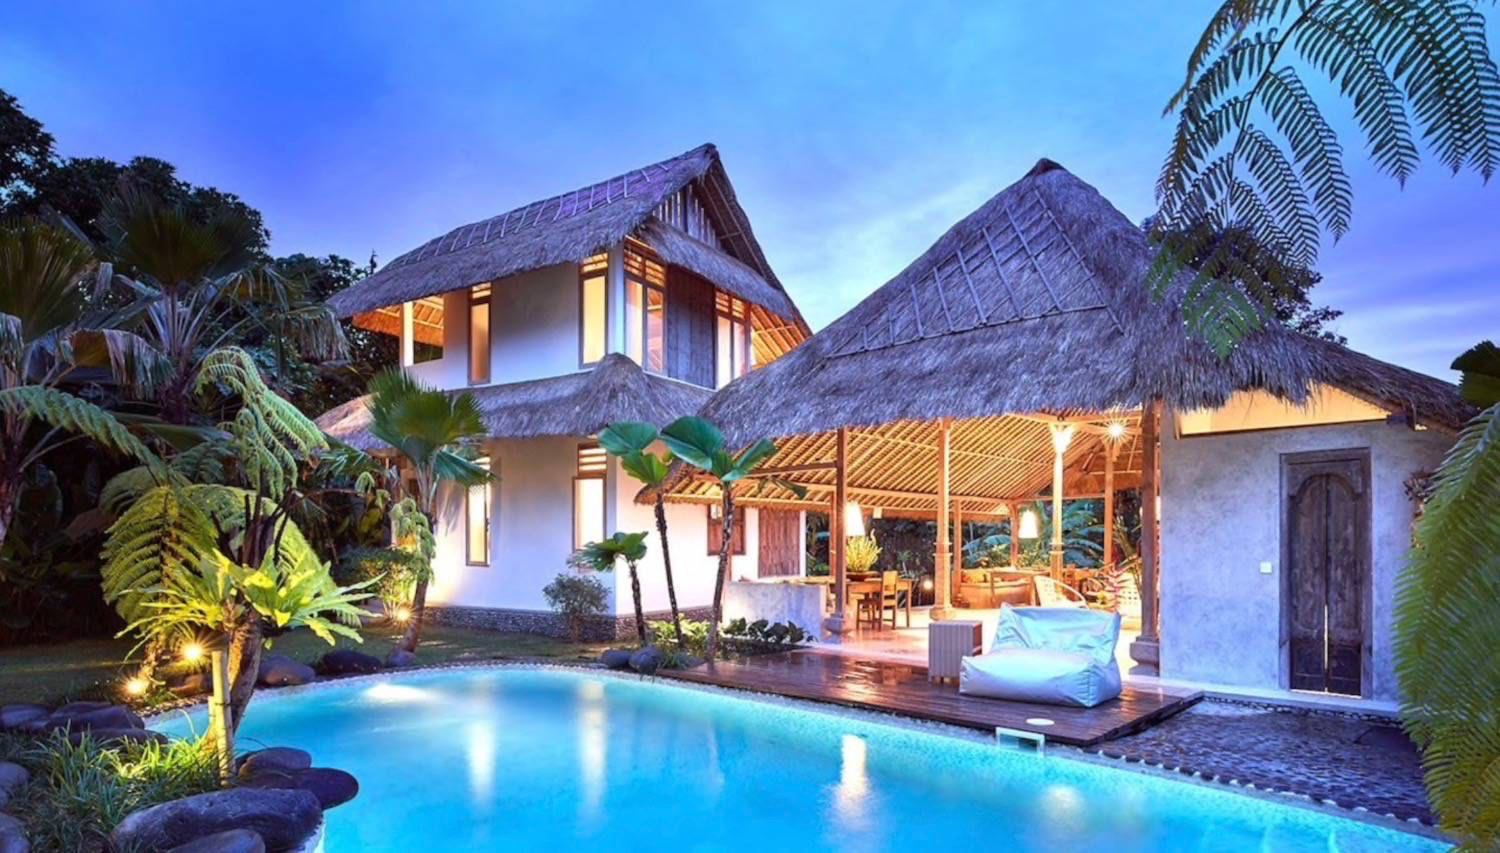 10 Incredible Airbnbs In Ubud Bali For Less Than 50